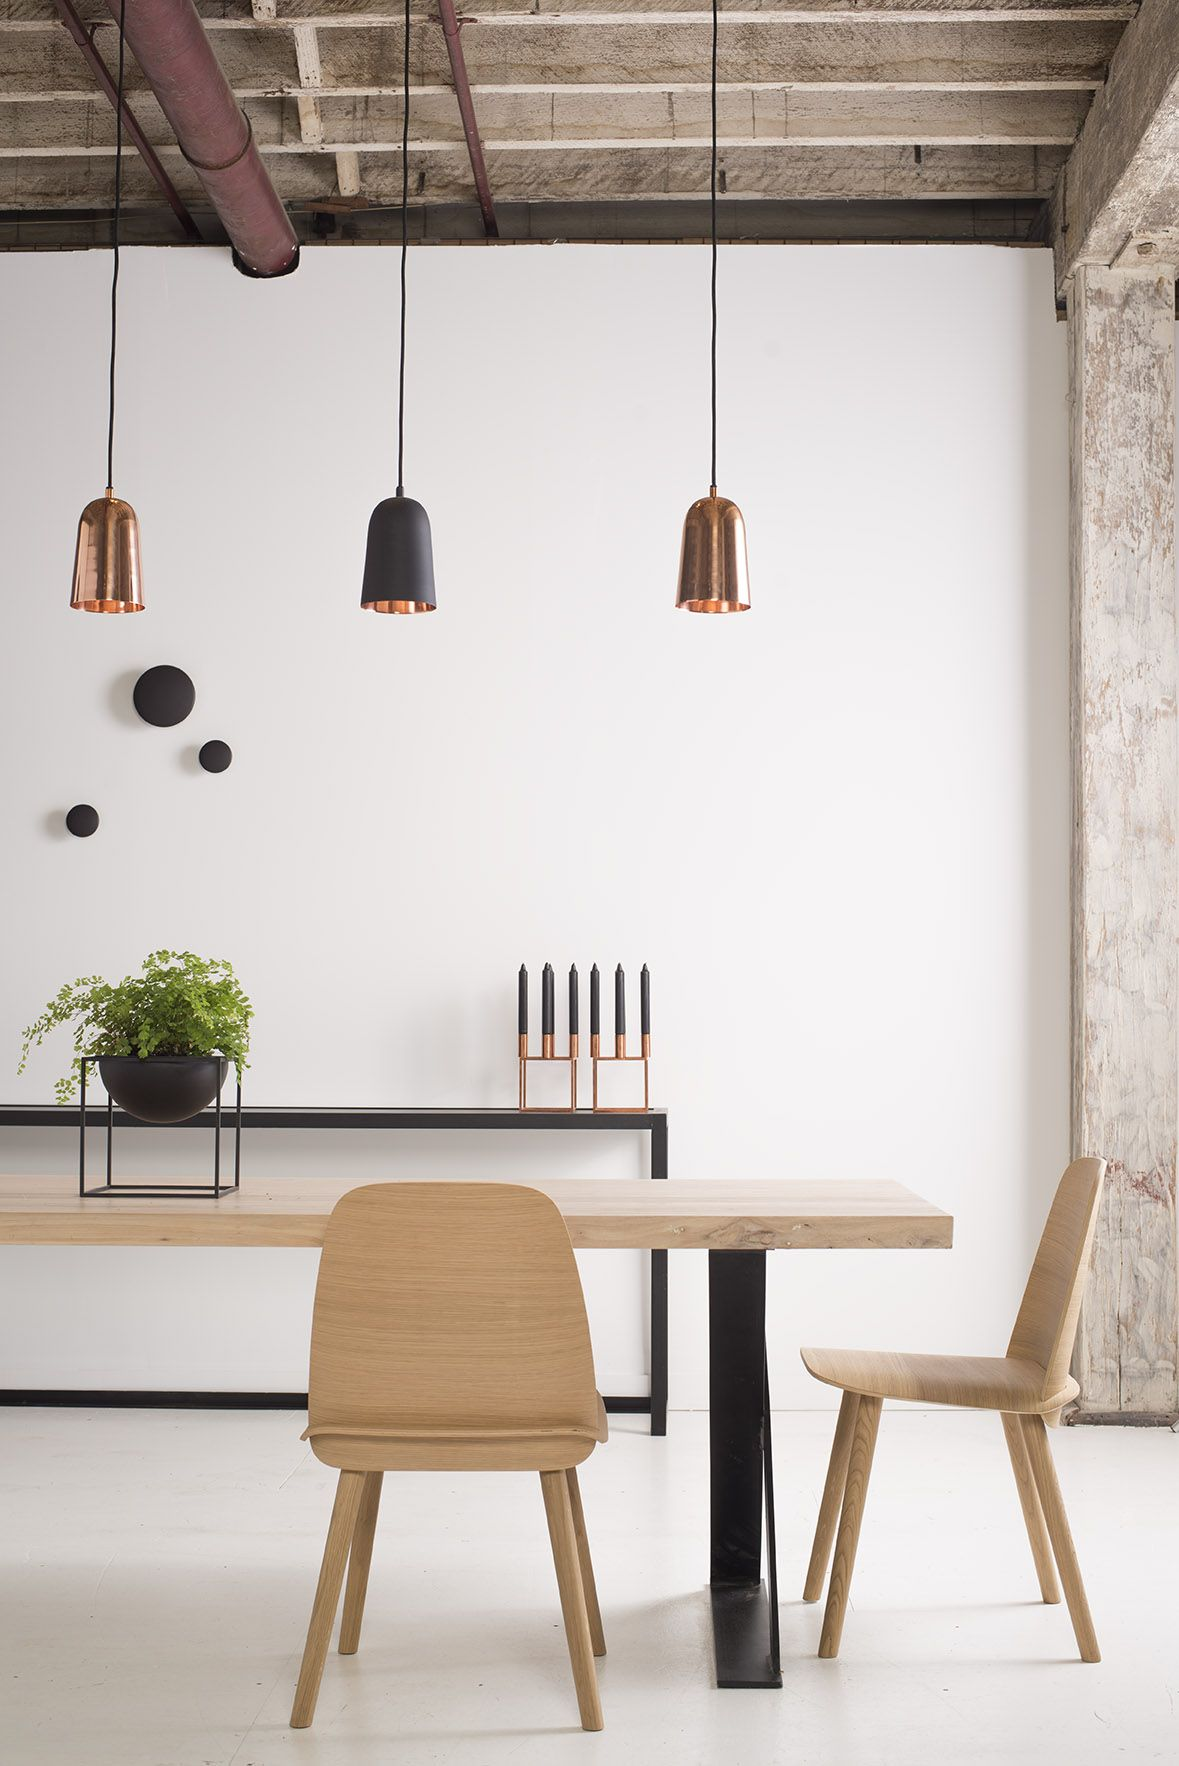 Showroom shot. Hudson Dining Table and Muuto Nerd Oak Dining Chairs. Muuto Black Dots on the Wall as well as By Lassen Kubus Candleholders and Kubus Bowls. All available in our online boutique!